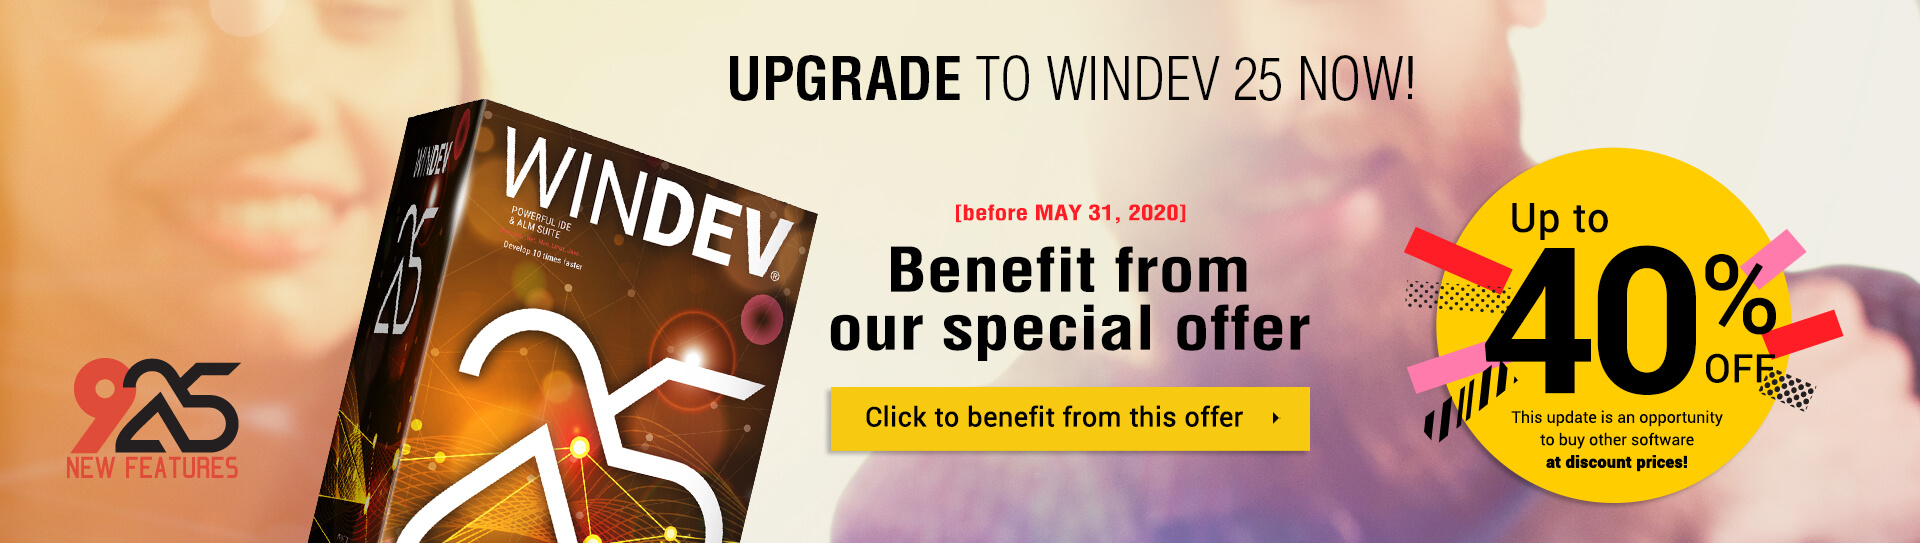 Upgrade to WINDEV 25 now